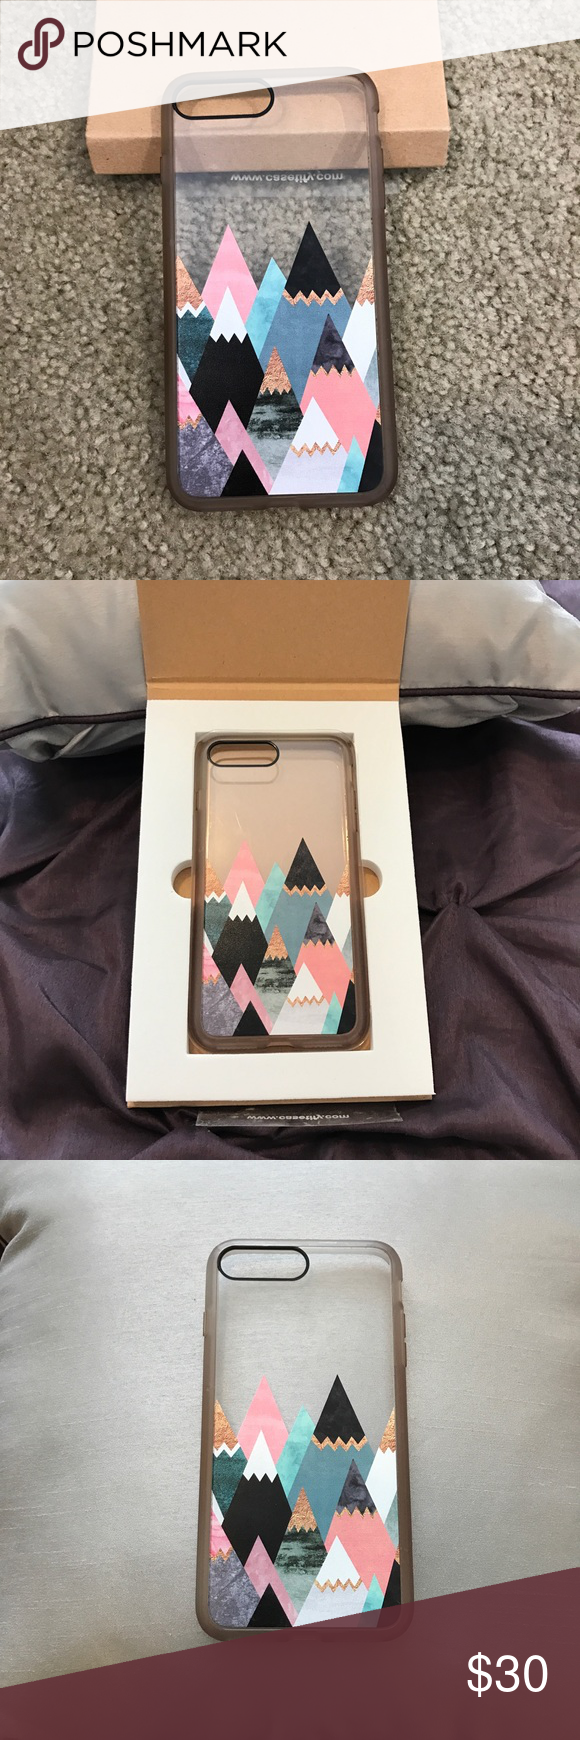 iPhone 7 Phone Case Phone case for iPhone 7+. Colorful Mountain design & clear background. In great condition.  Brand is casetify Casetify Accessories Phone Cases